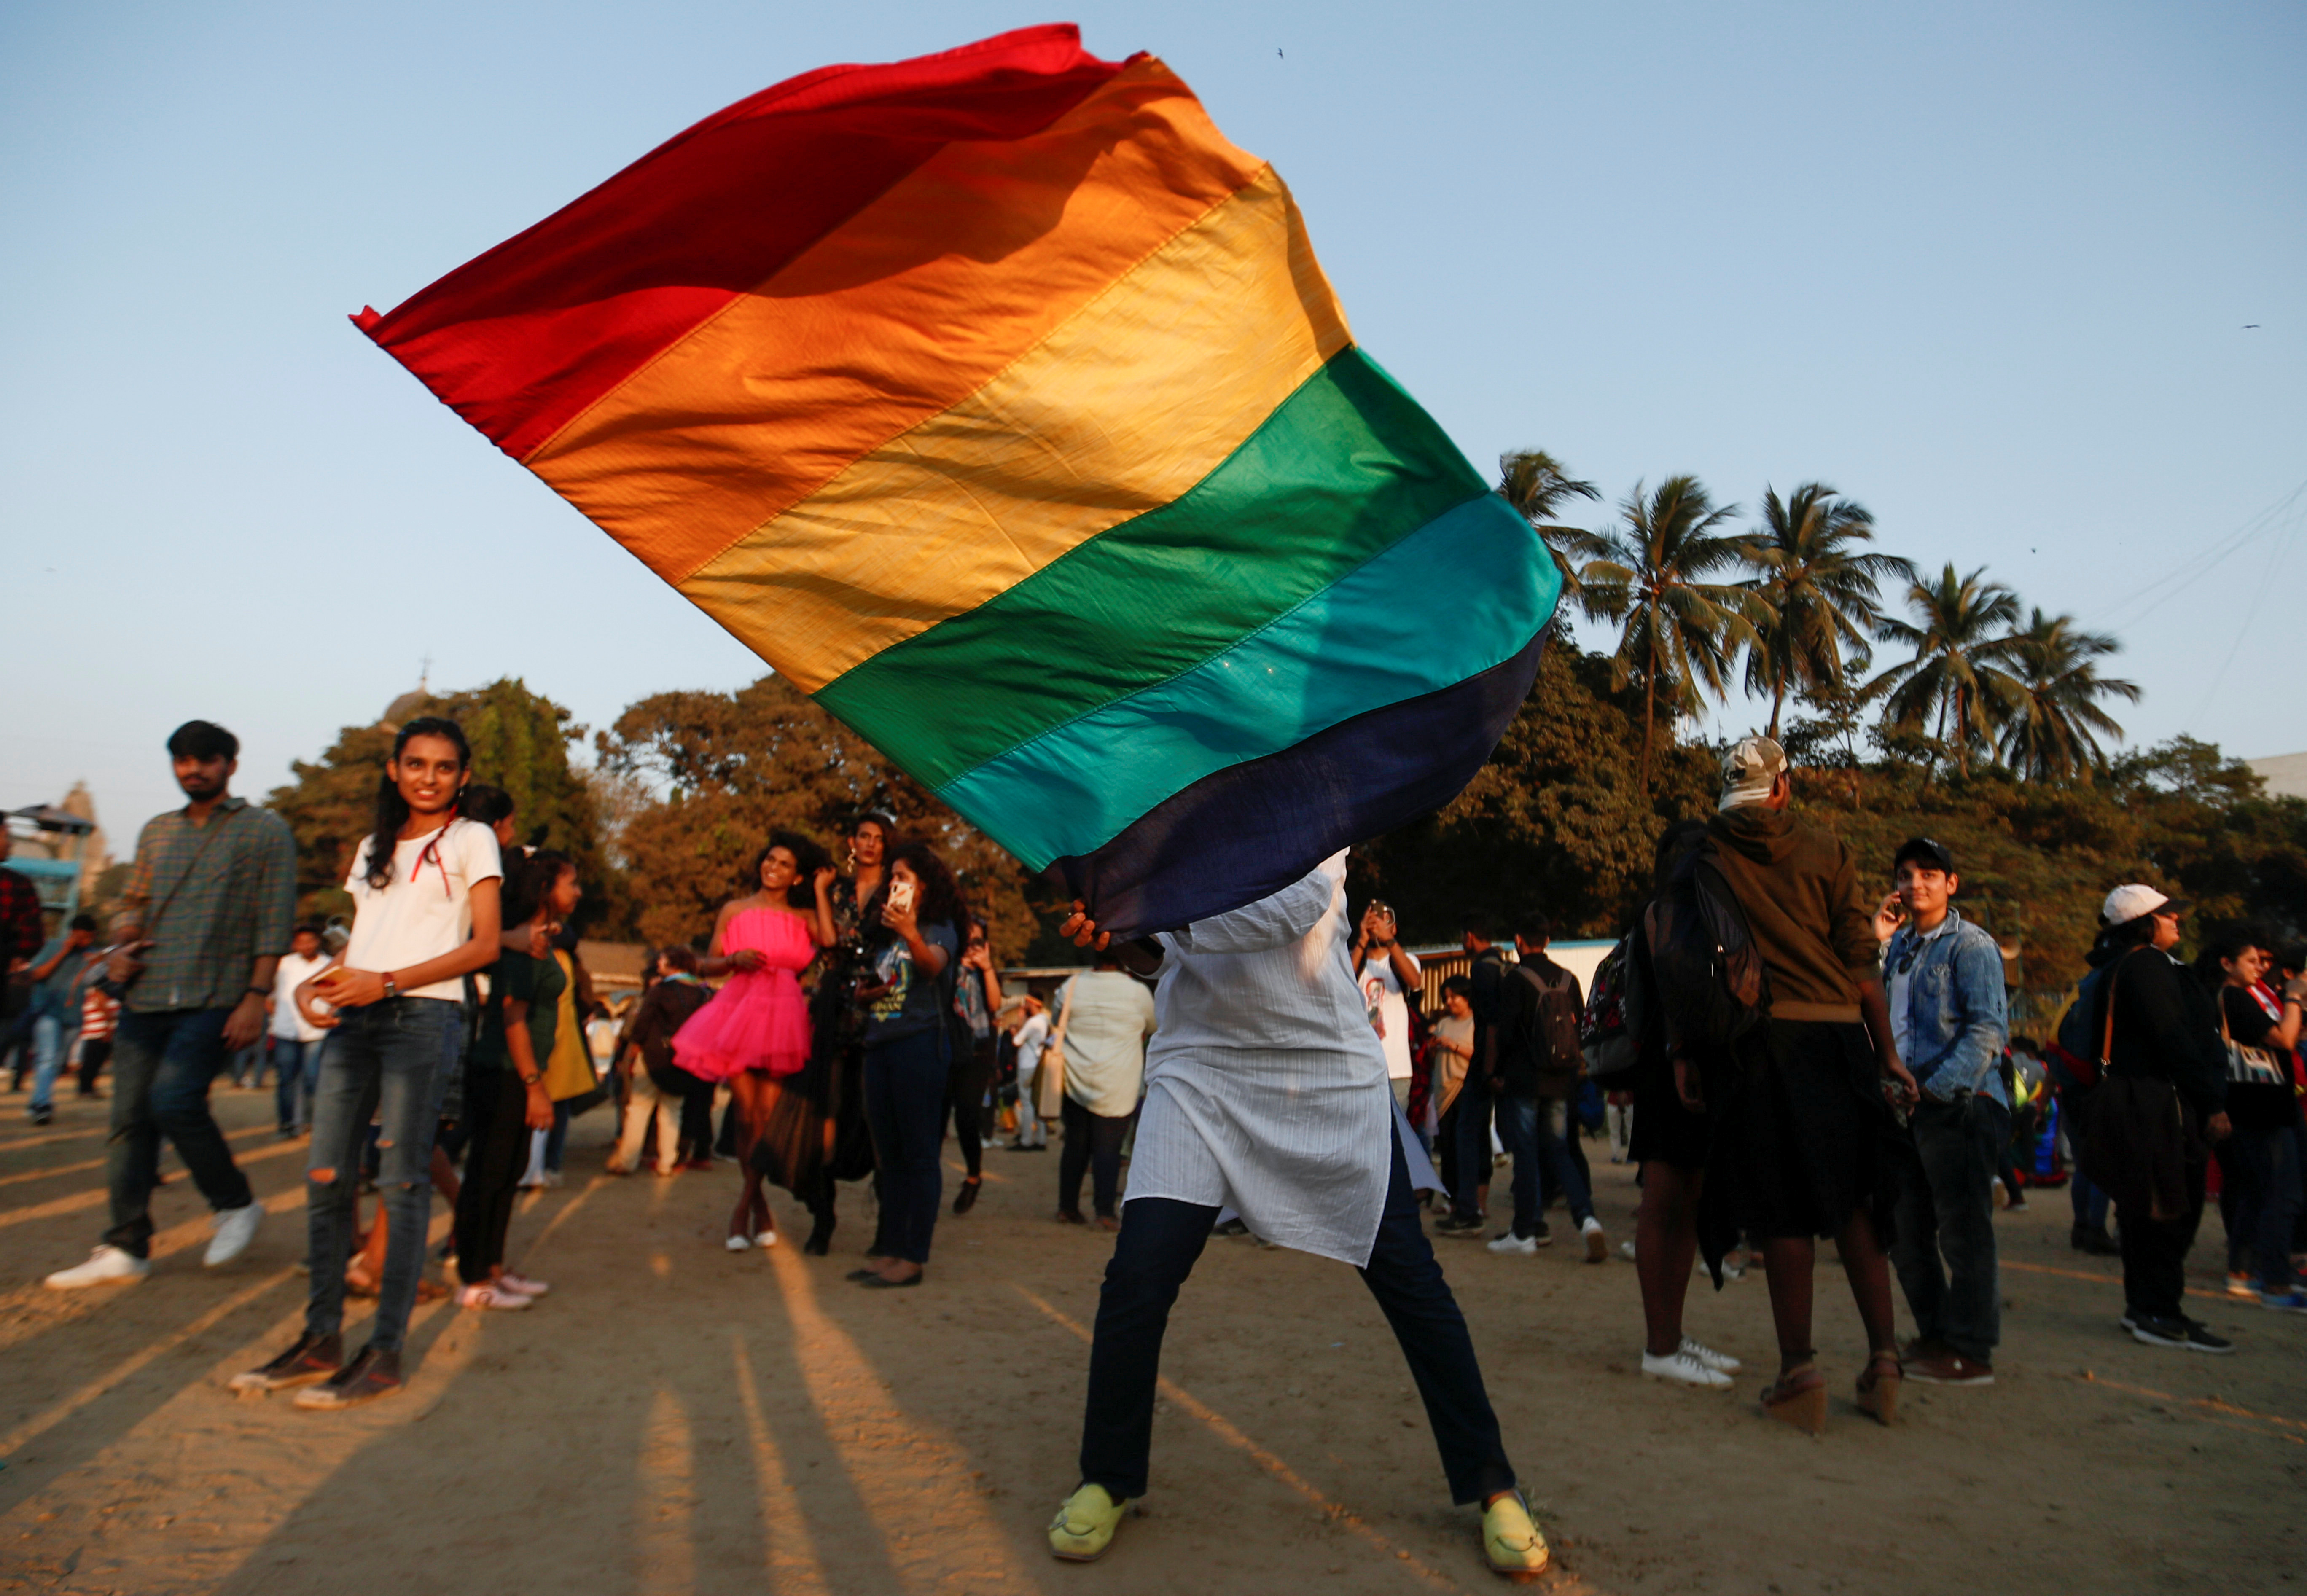 Indian Judge calls for reforms to respect LGBTQ+ rights